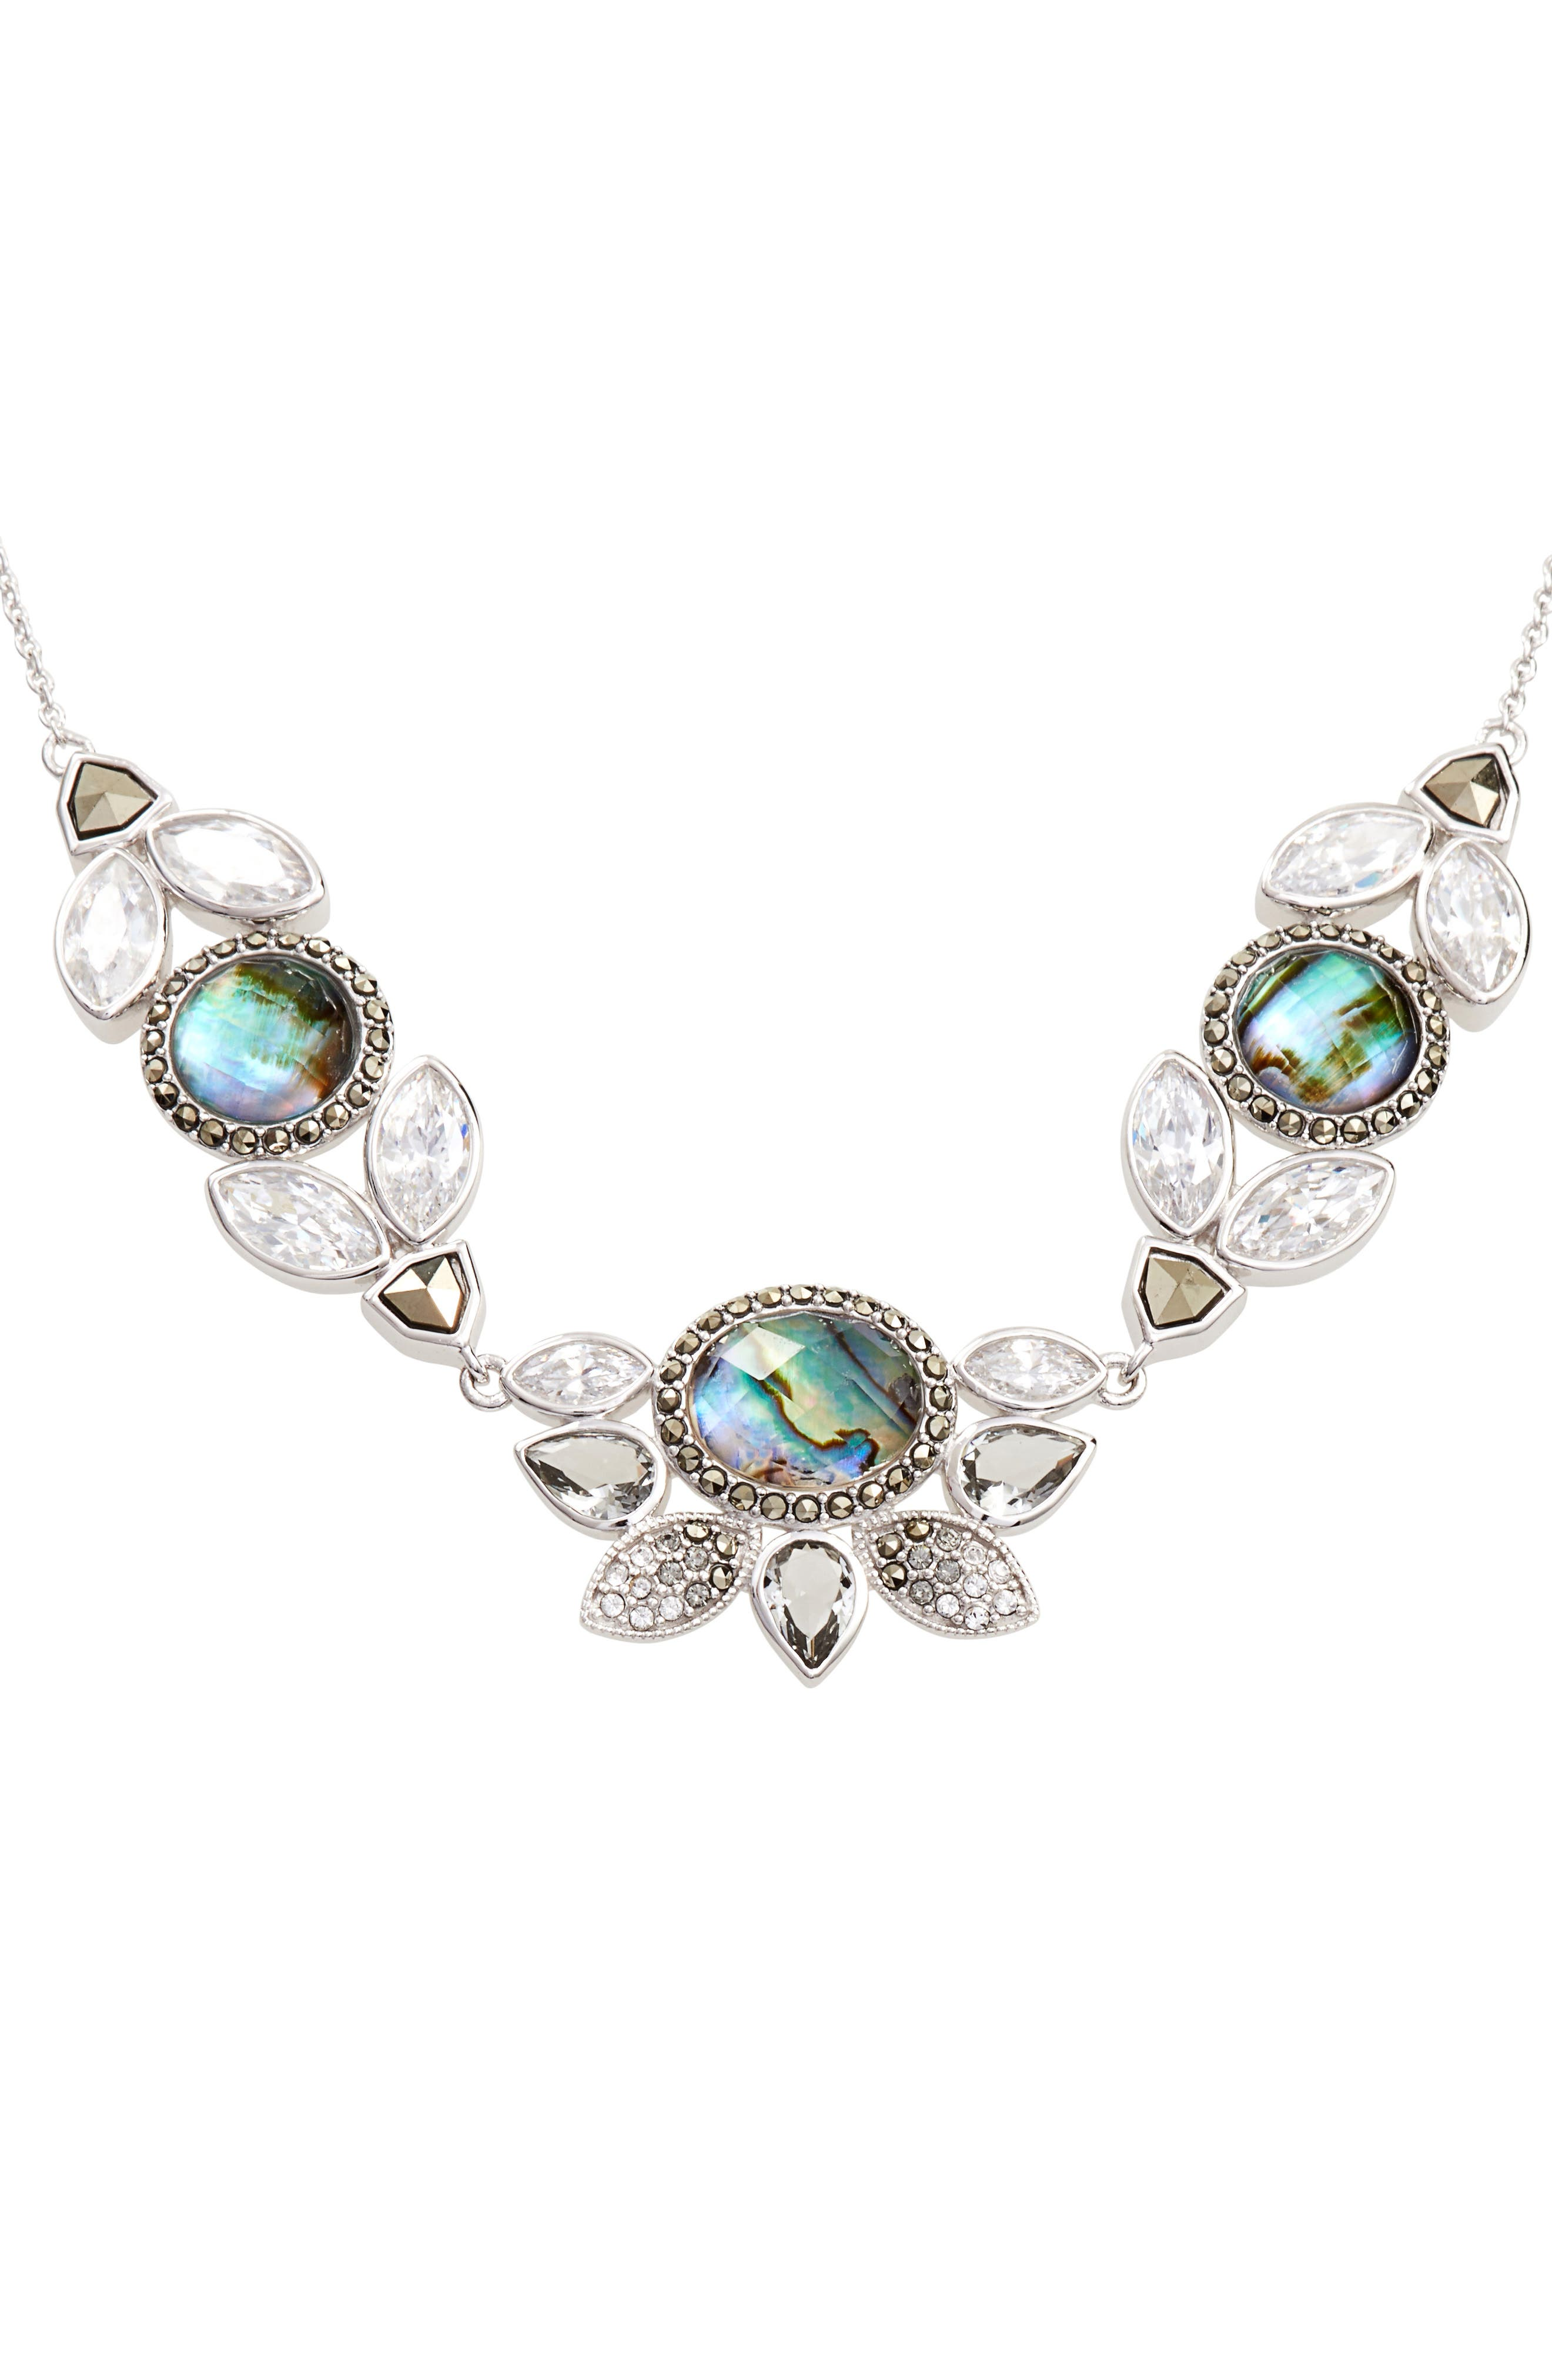 Cluster Frontal Necklace,                             Main thumbnail 1, color,                             400